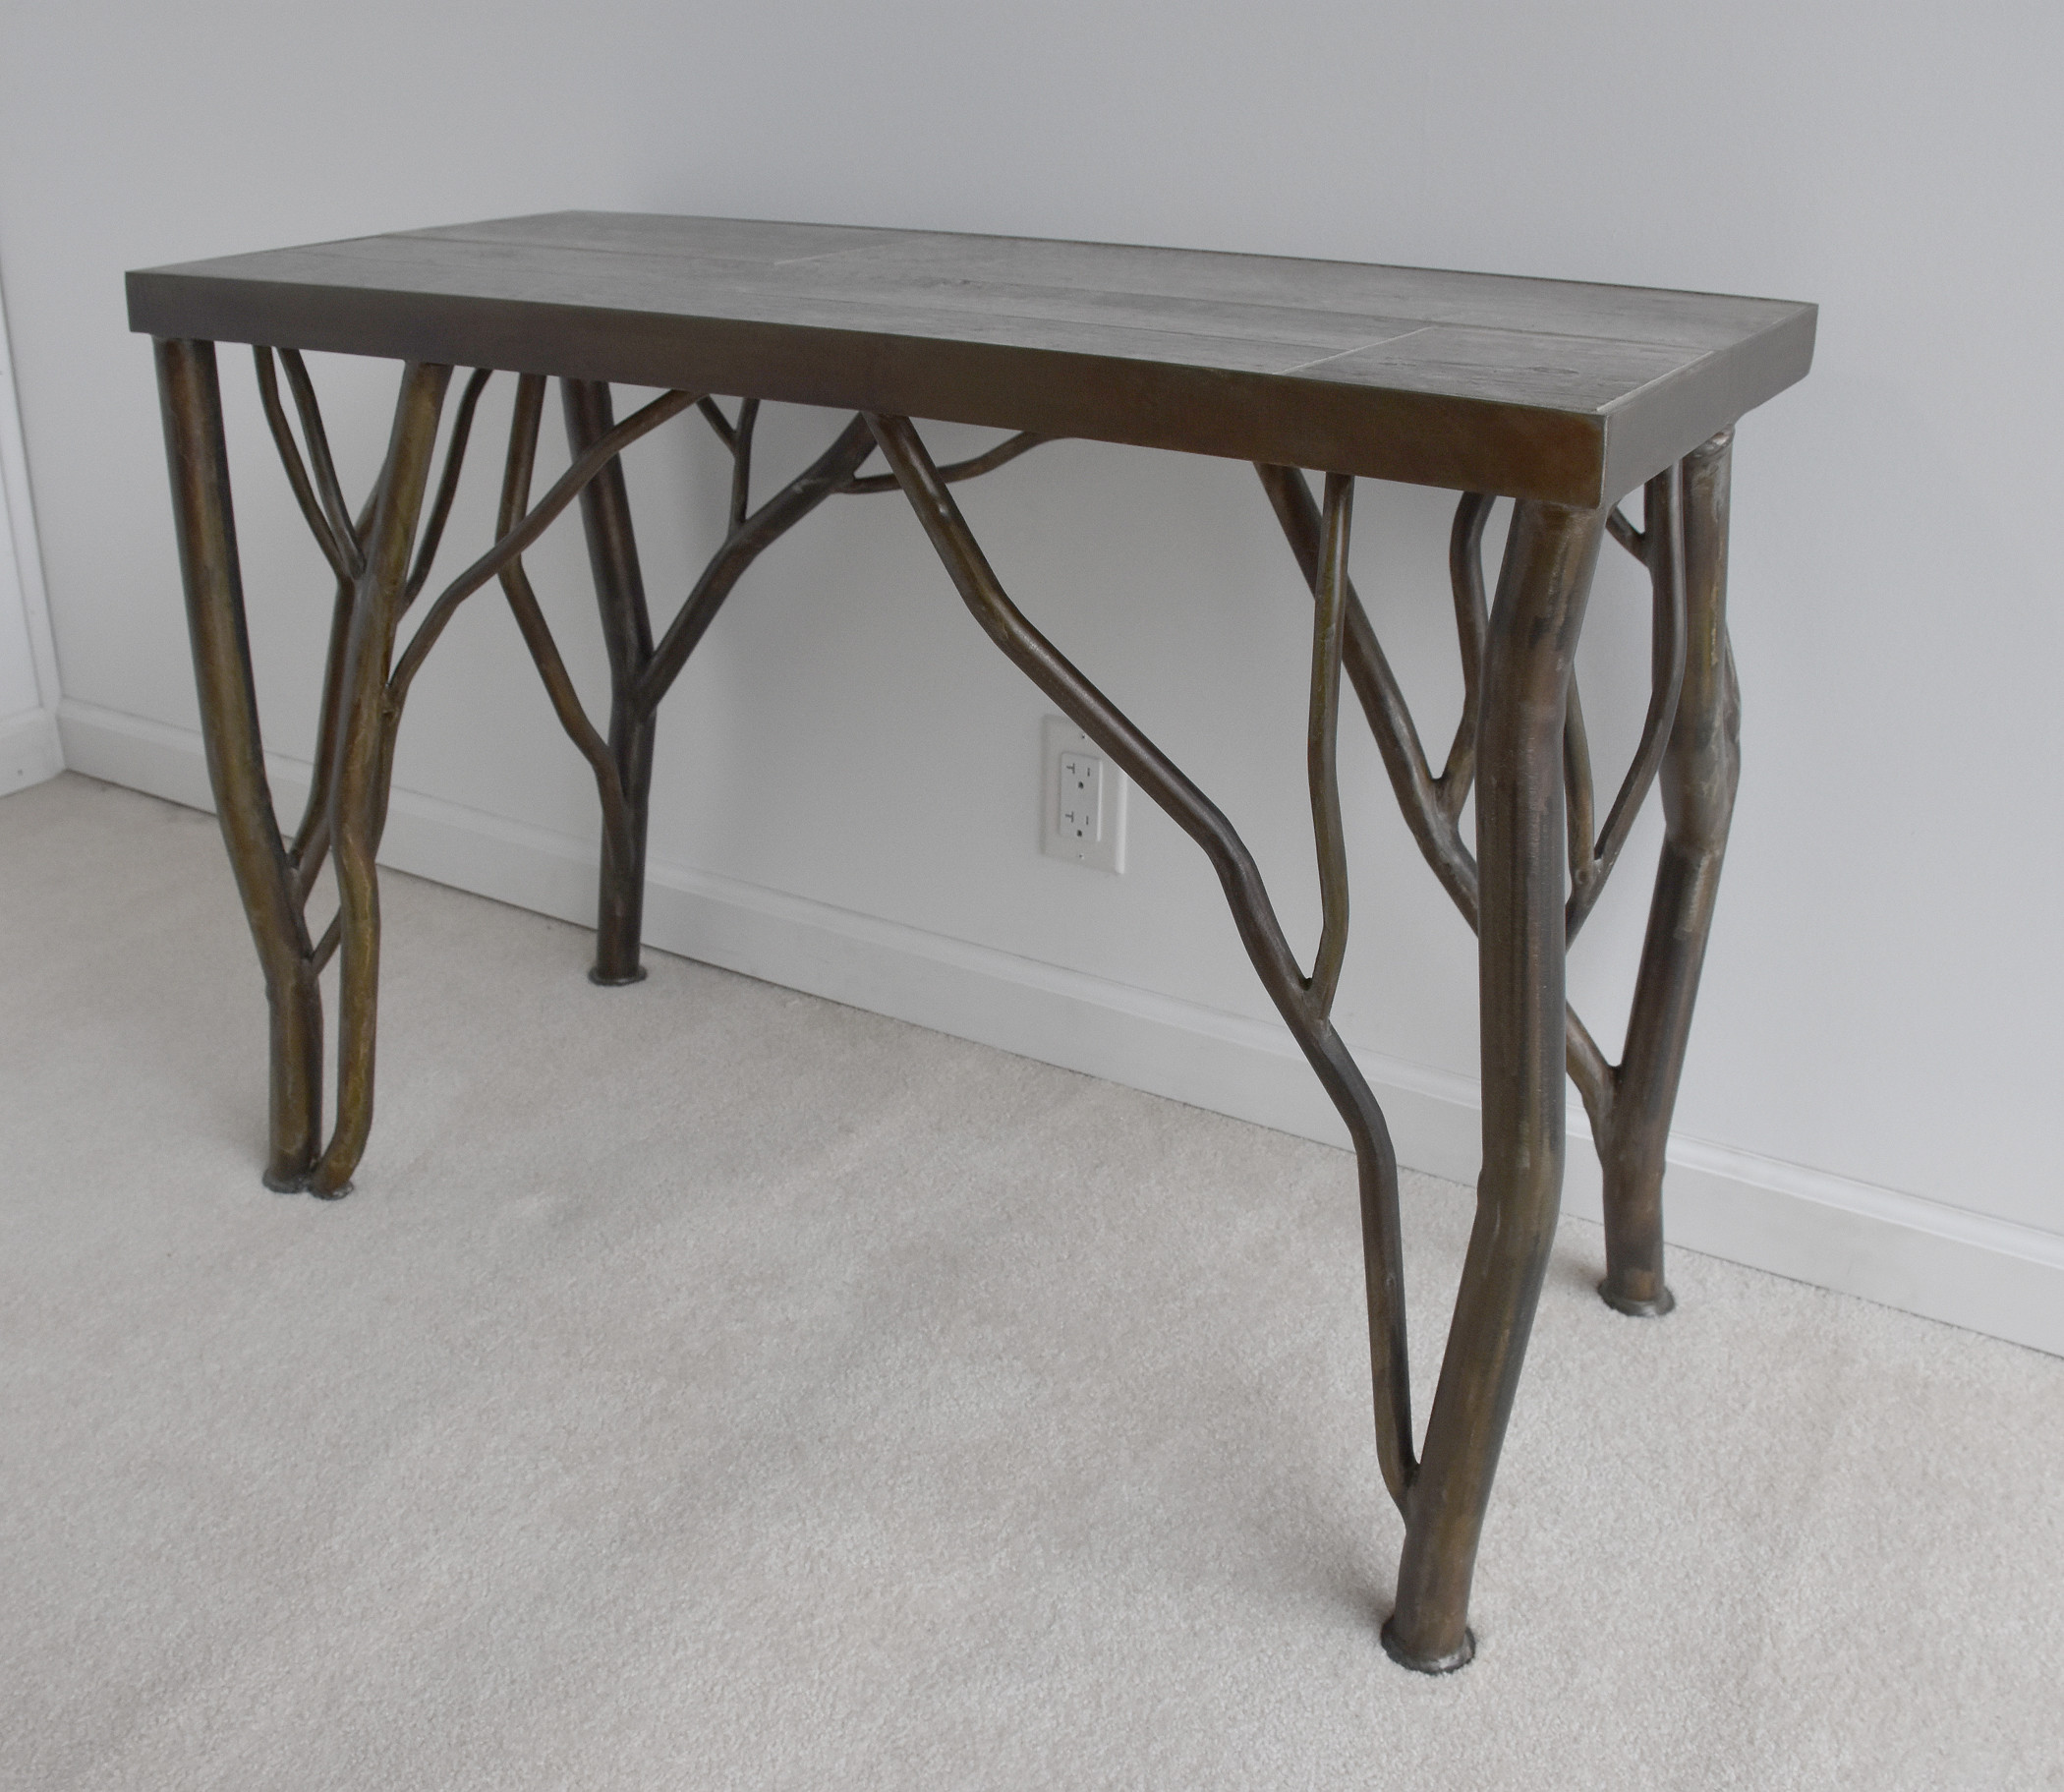 Nollette Metal Works Steel Branch Wall Table With